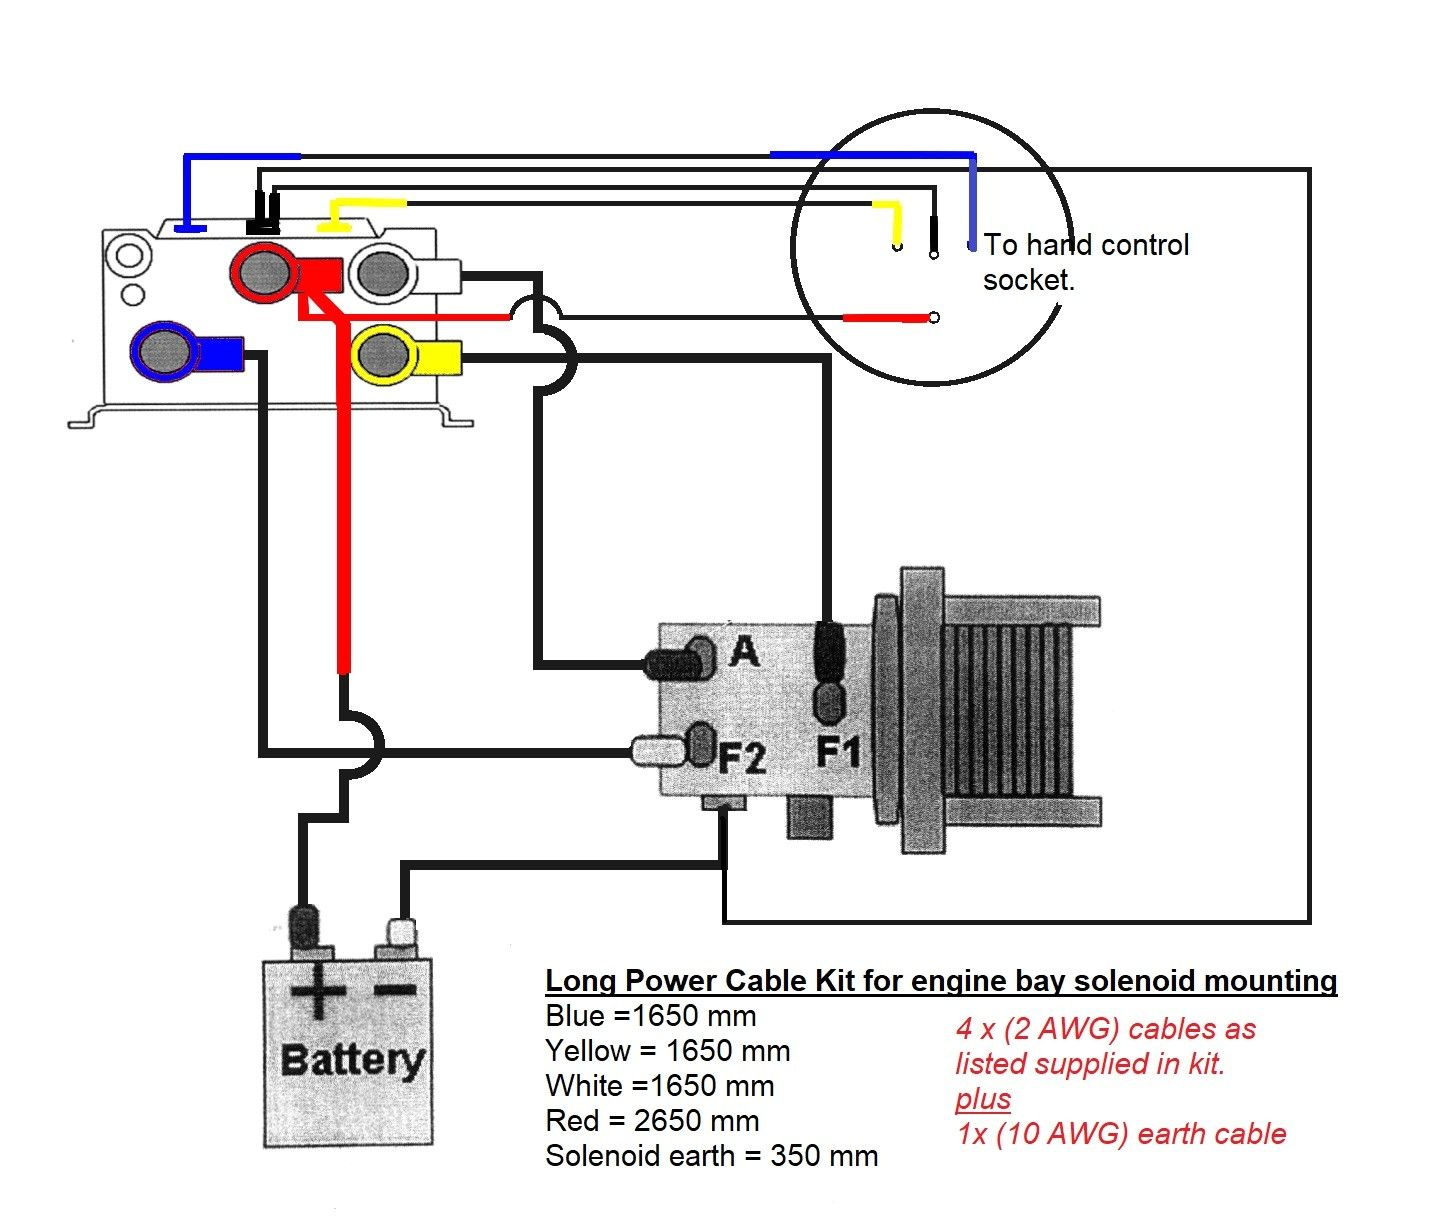 Atv Superwinch Solenoid Diagram In 2020 House Wiring Diagram Power Cable